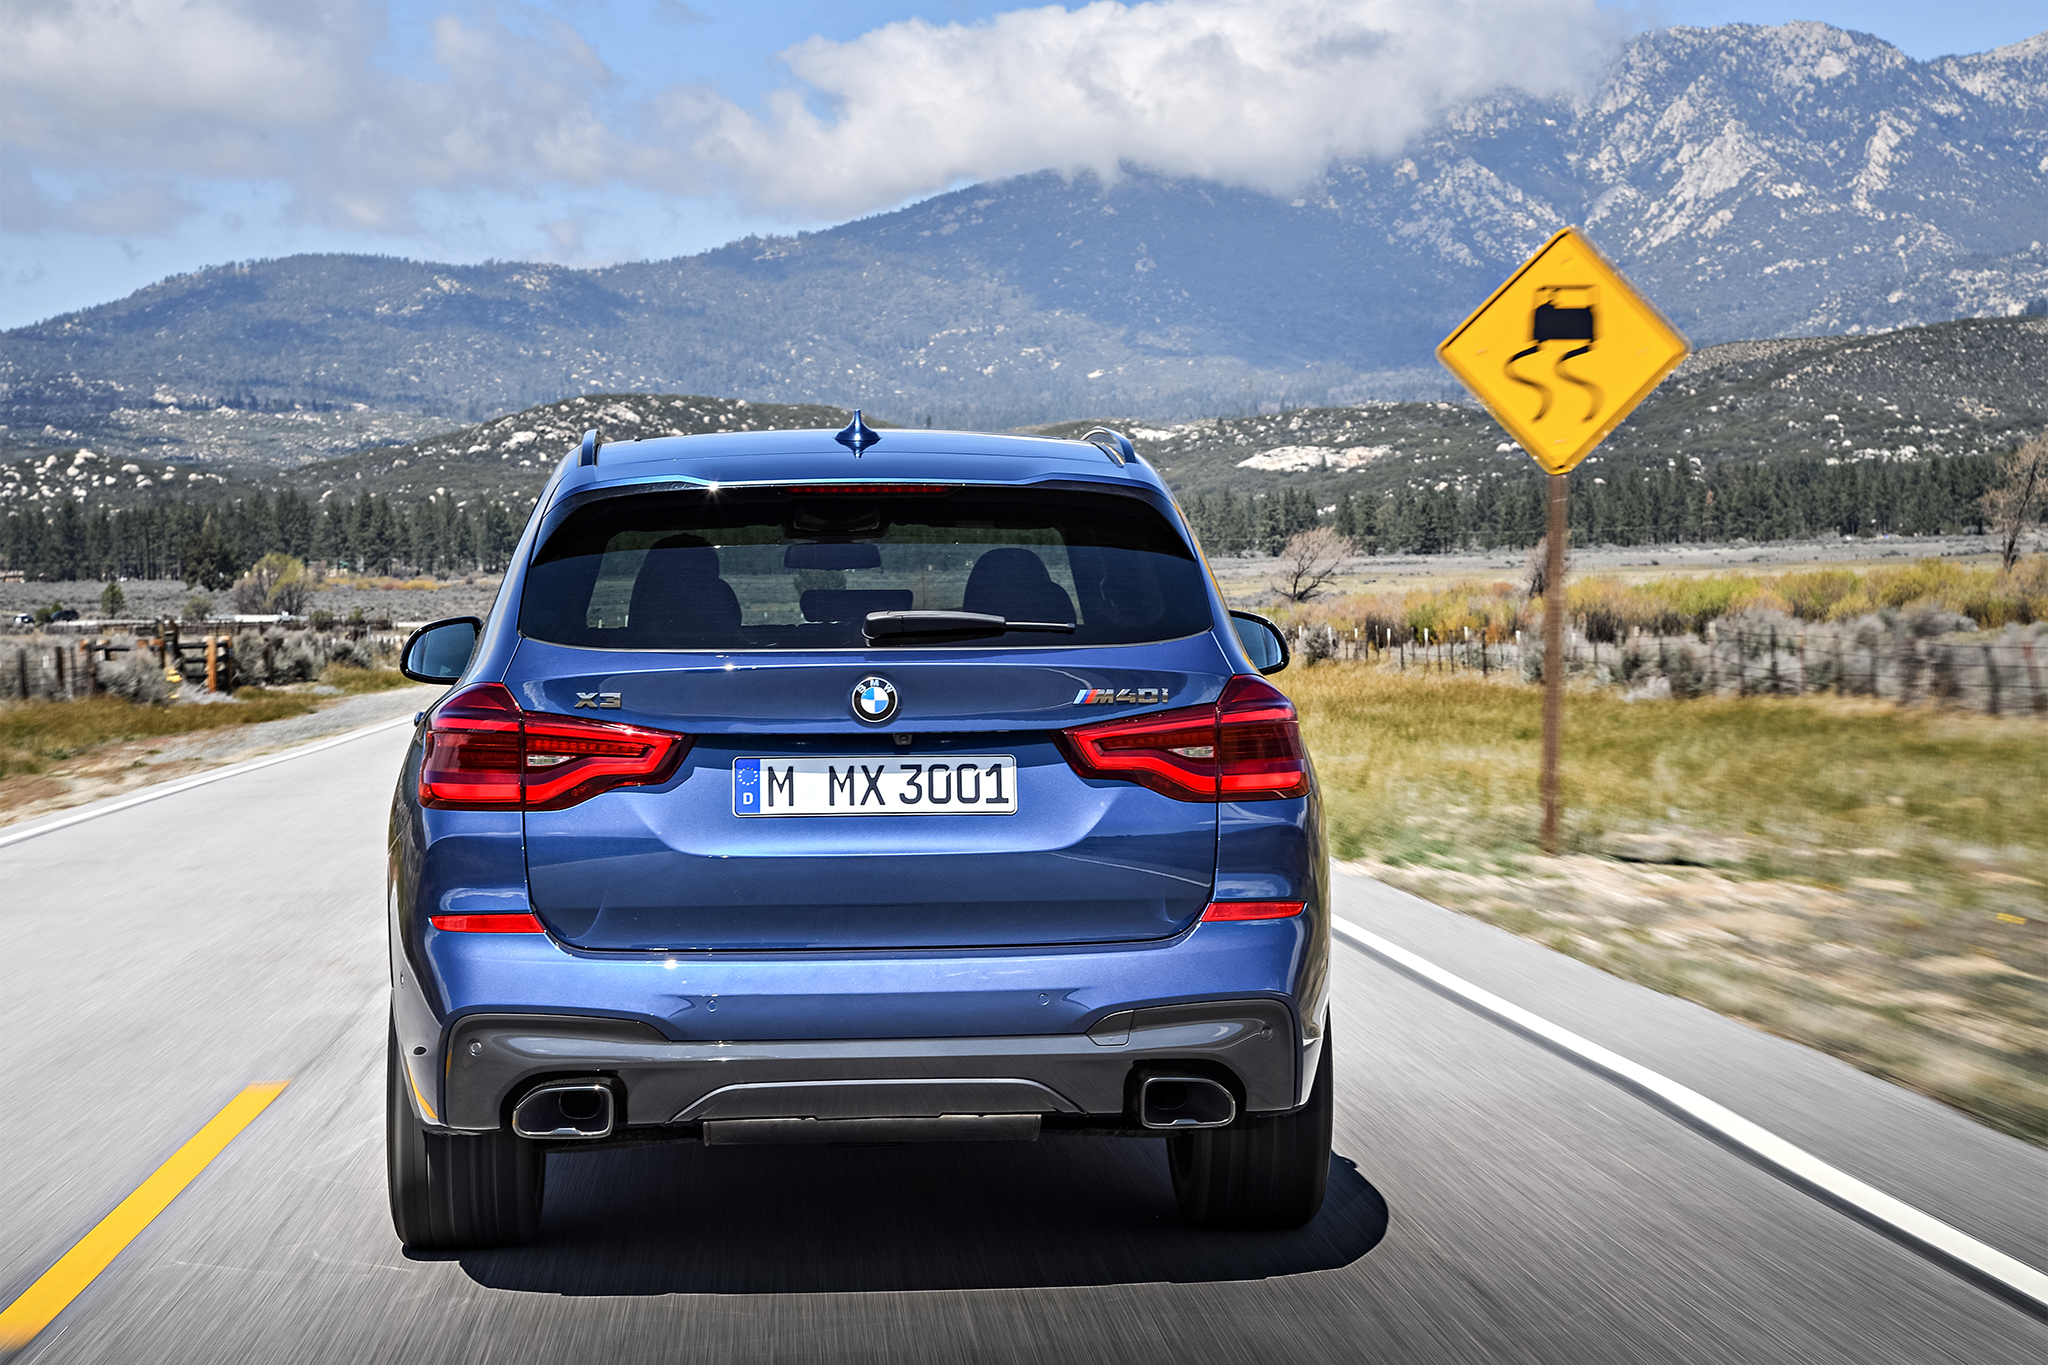 There S No Info On Pricing But If You Re Interested Head Over To Your Local Bmw Dealer Who Will Begin Stocking The 2018 X3 Later This Year In